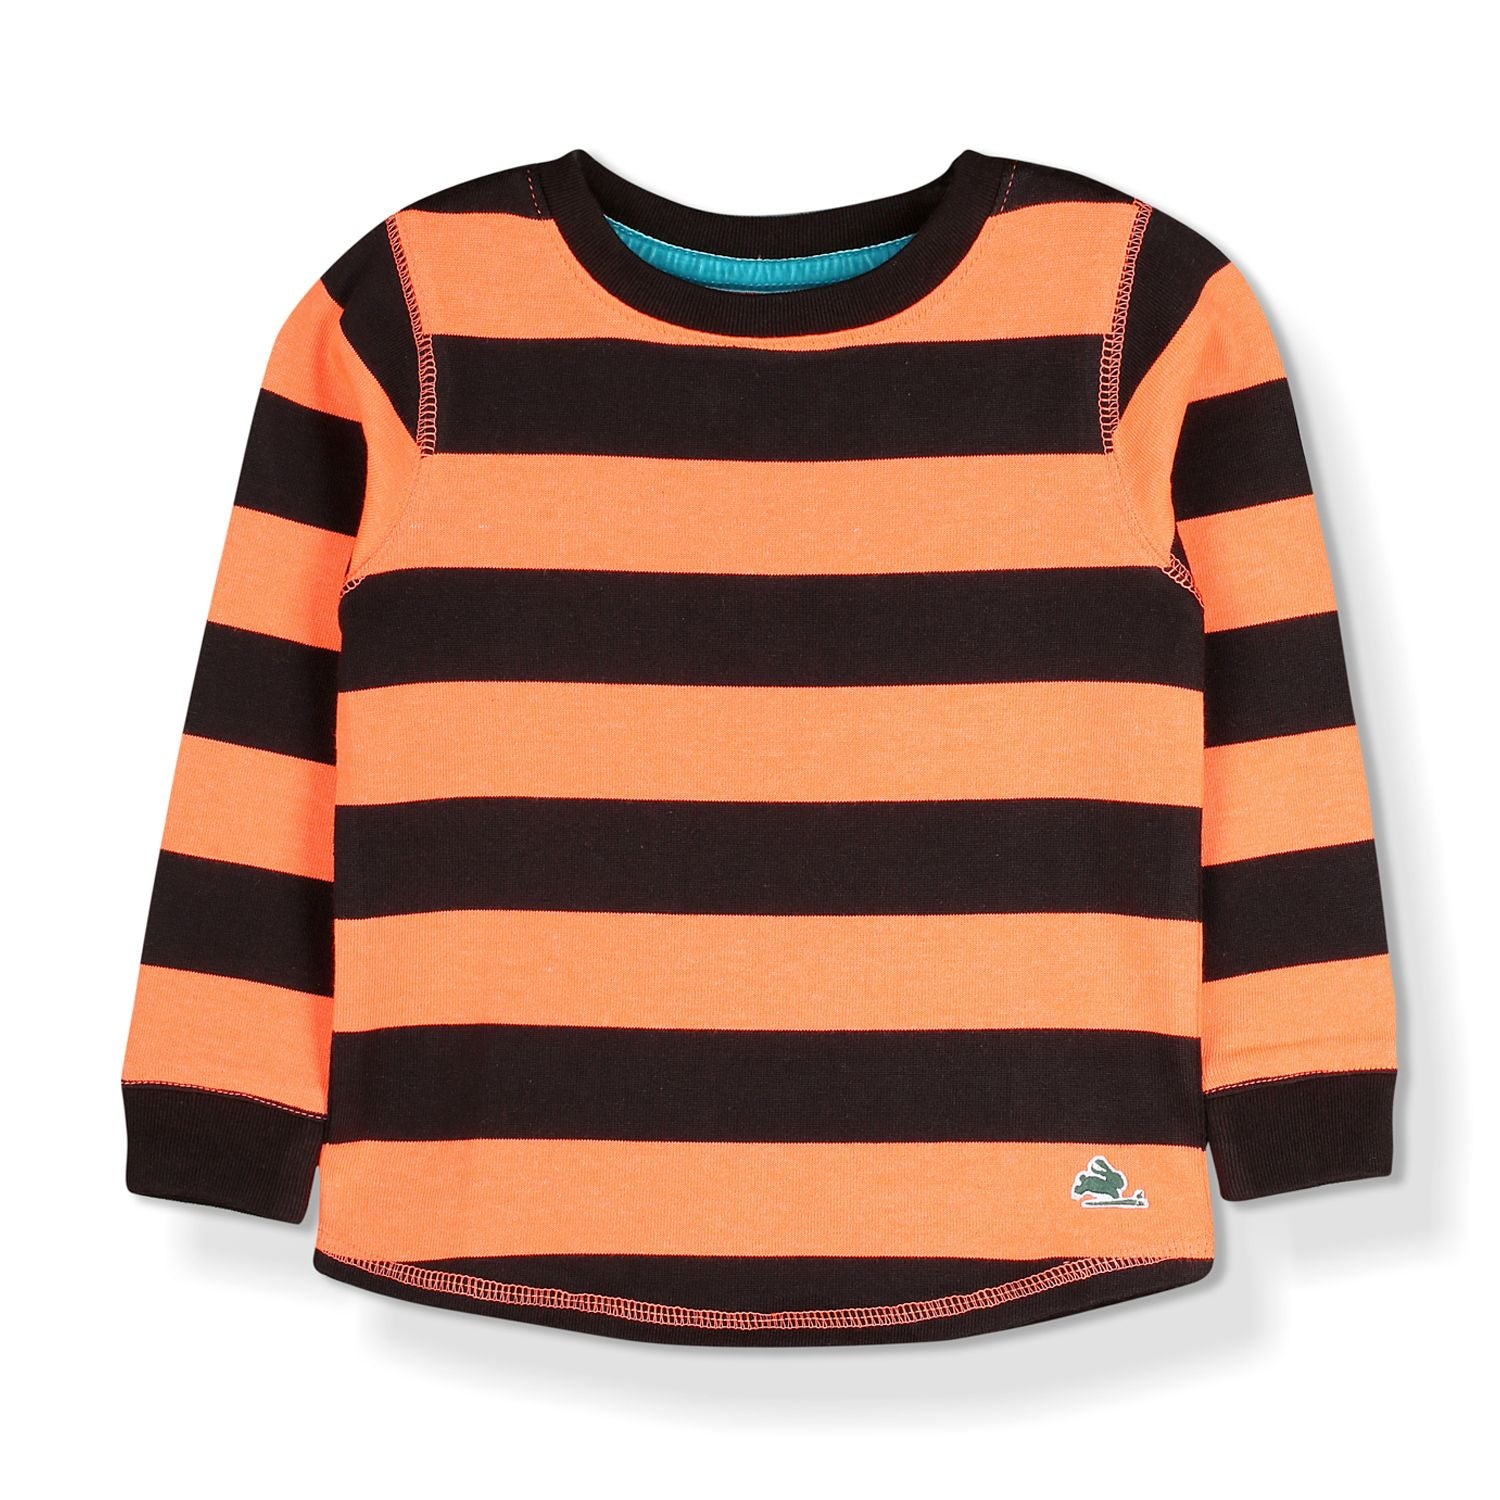 Lightweight Sweatshirt for kids